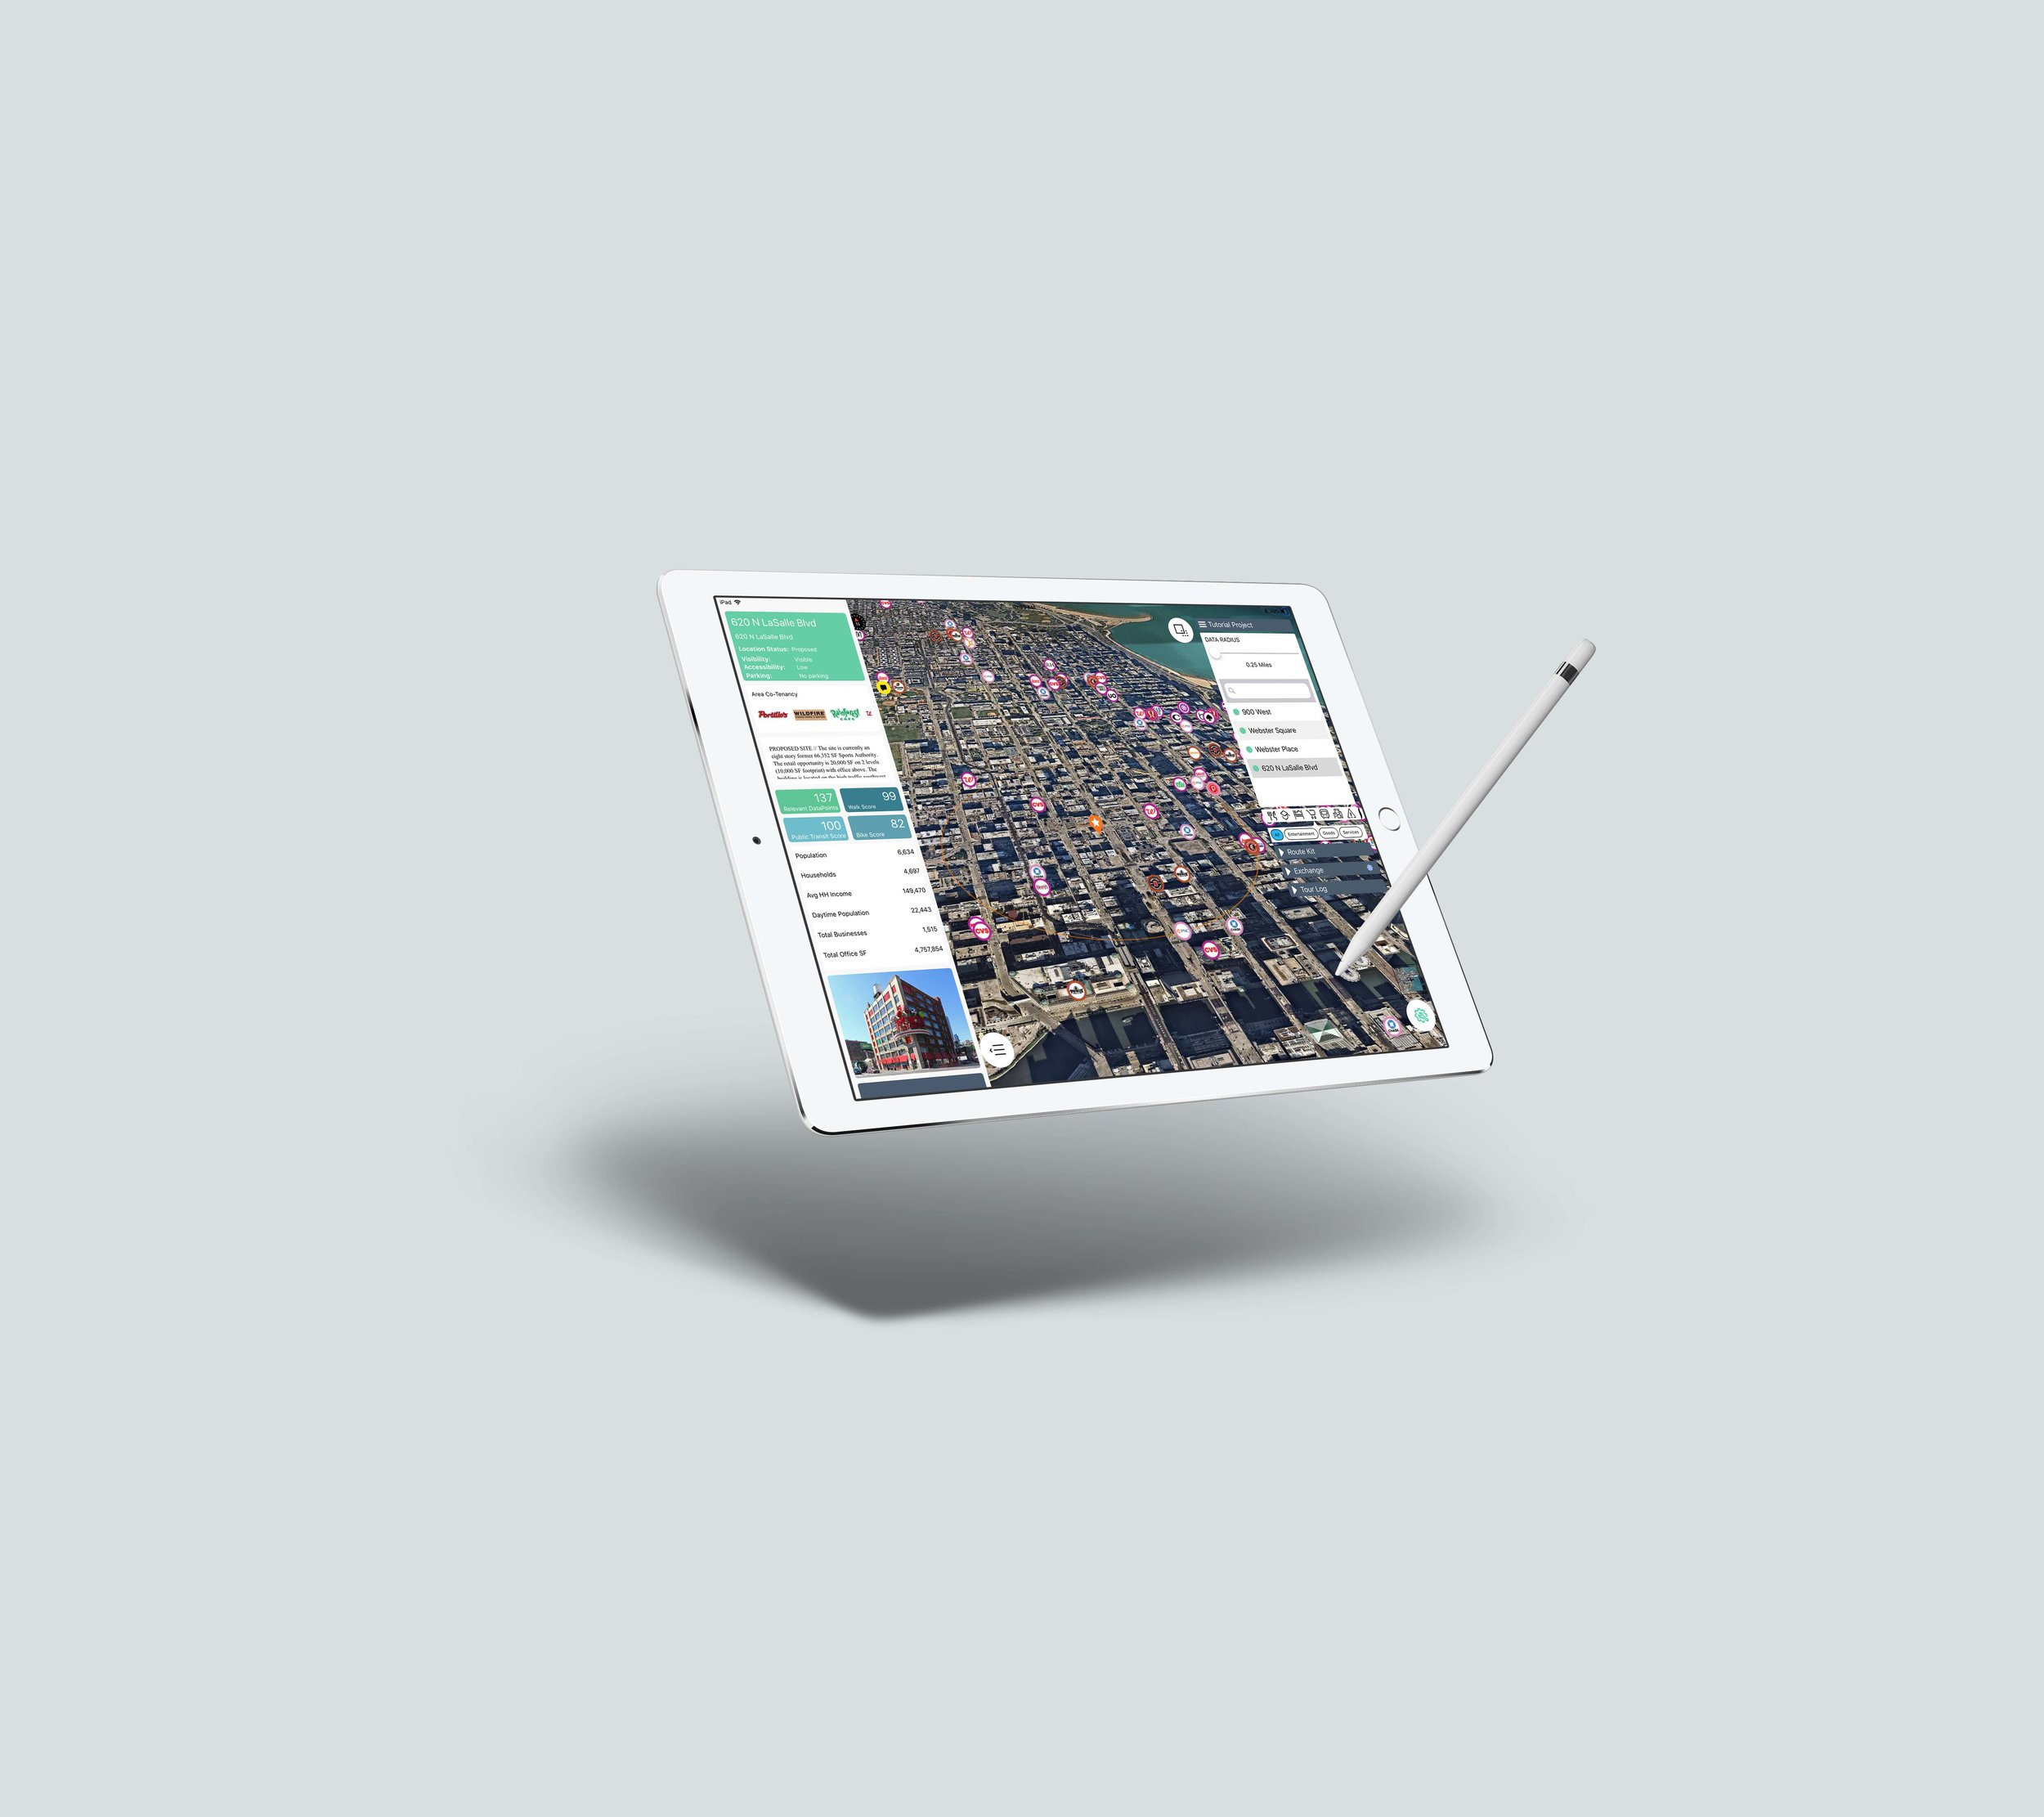 002-iPad-Landscape_right_birdseye_sm.jpg